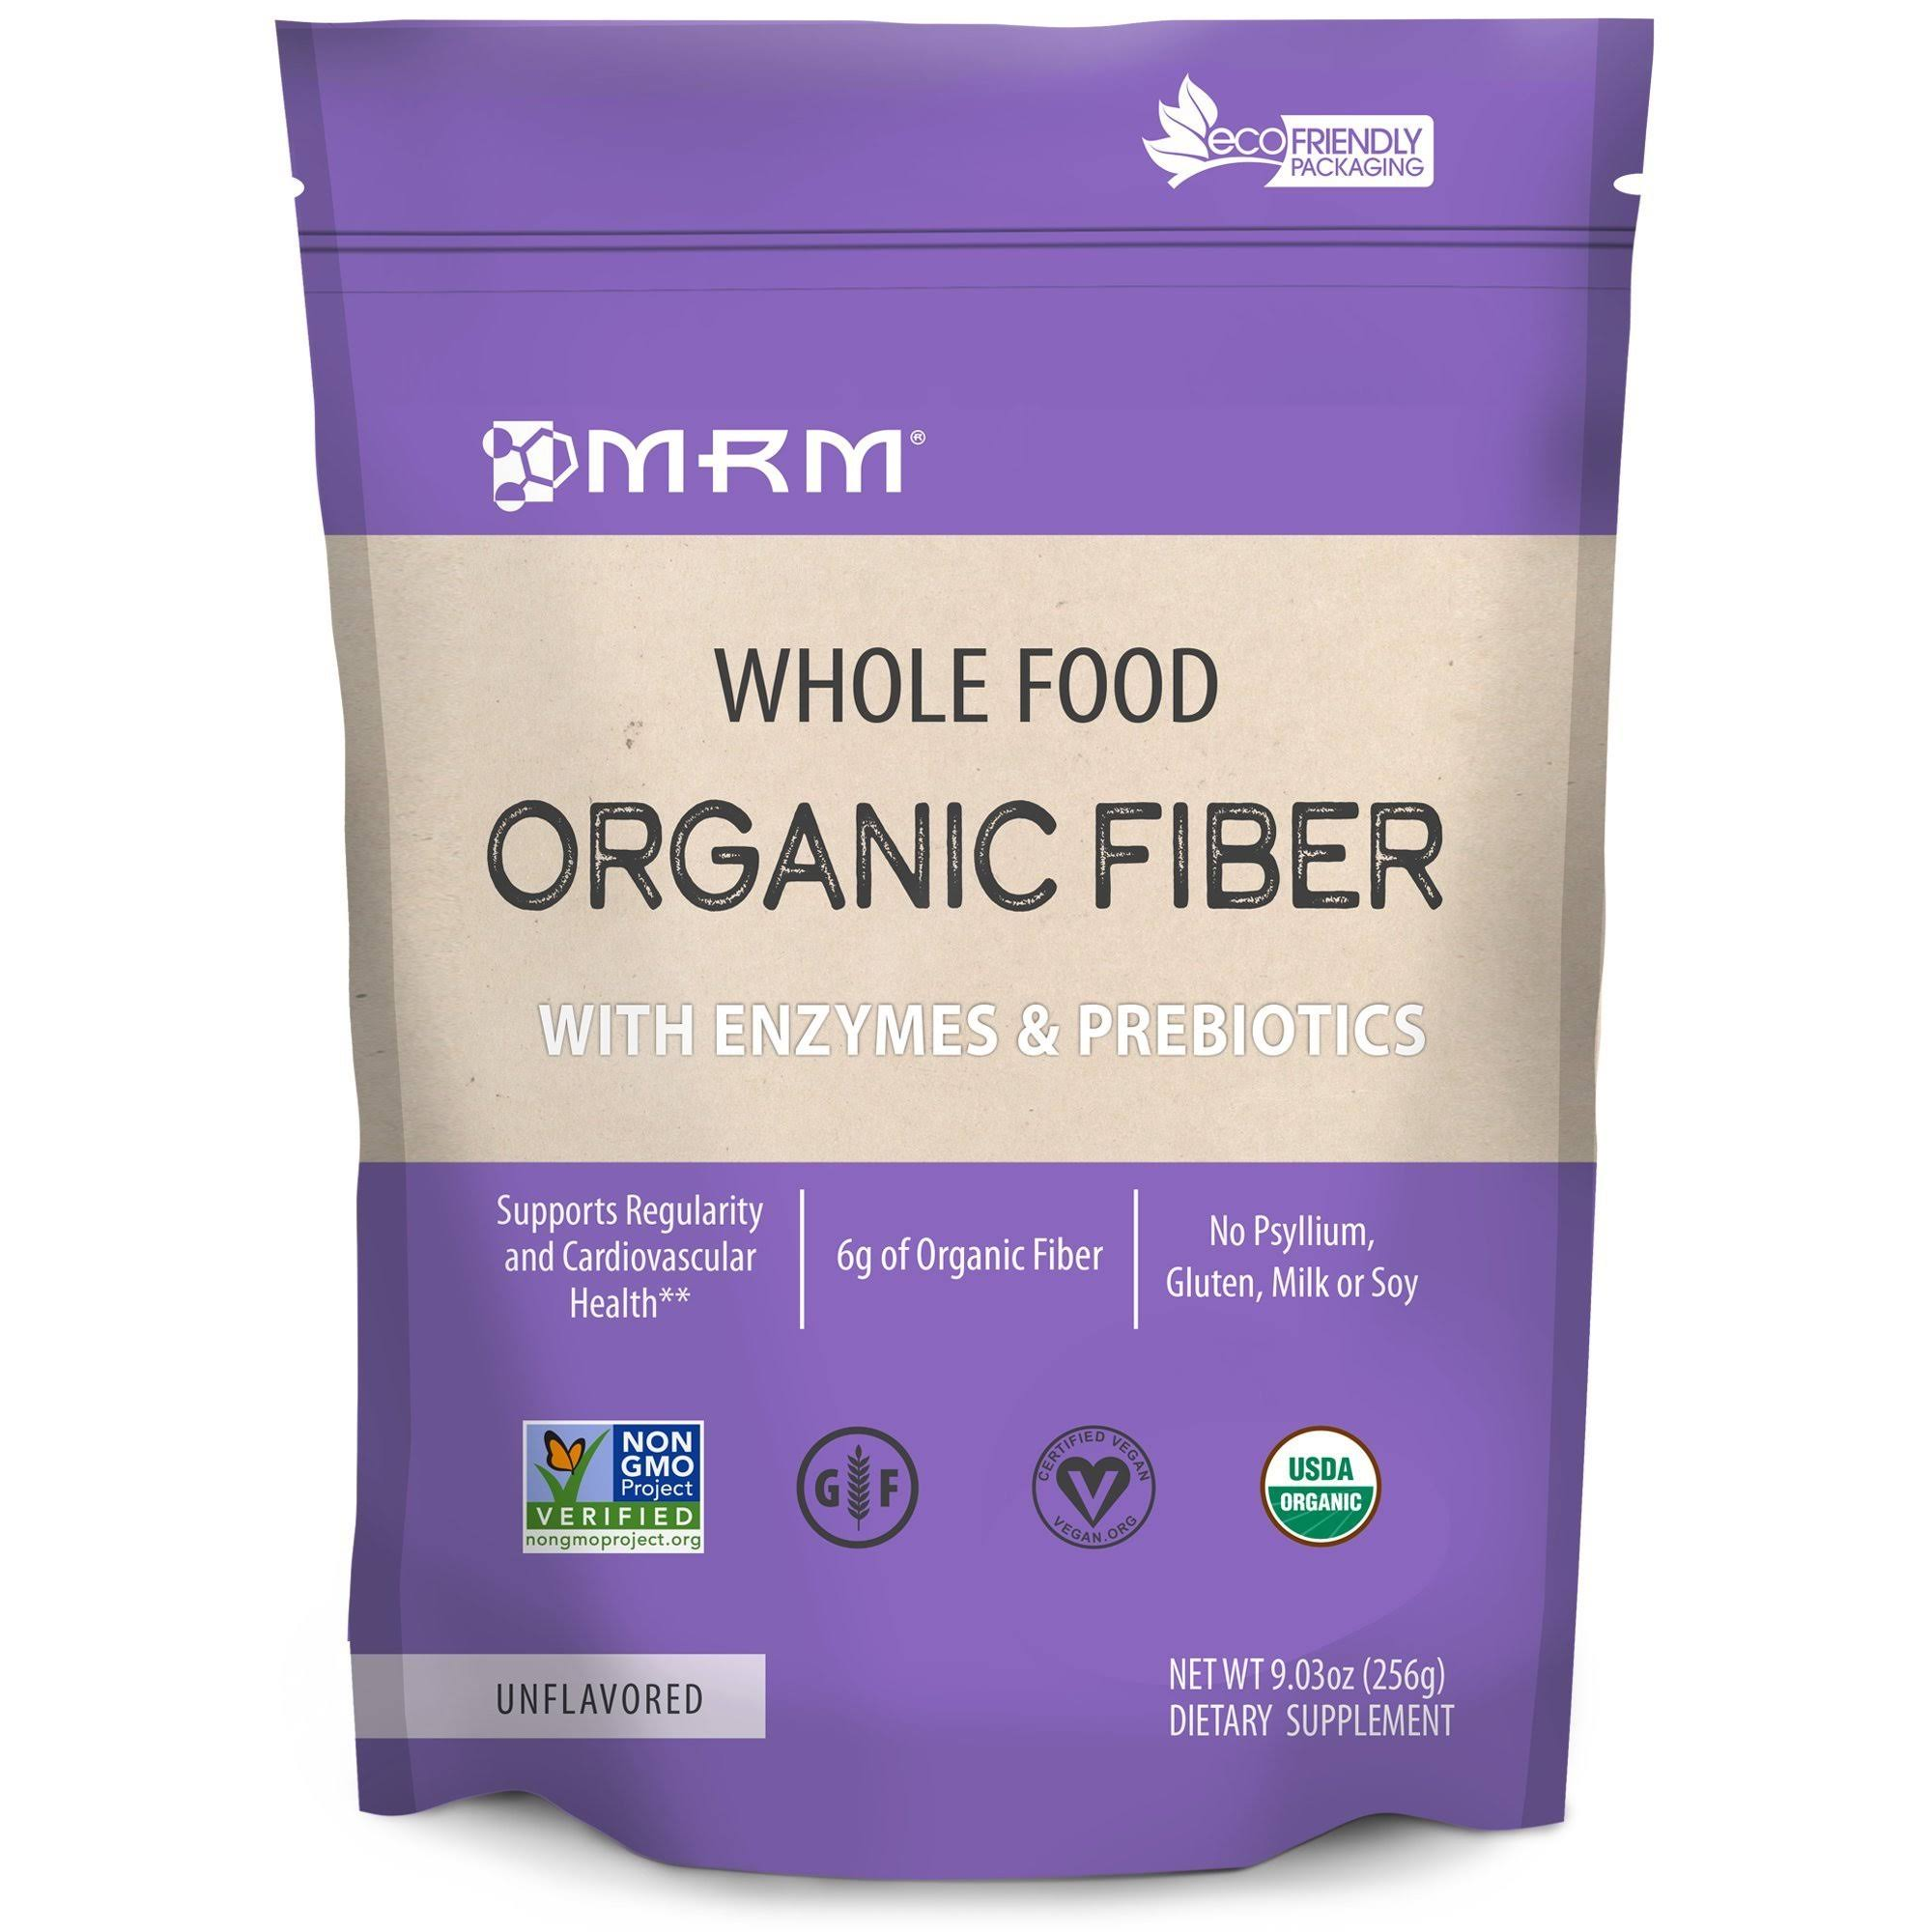 MRM Whole Food Organic Fiber Dietary Supplement - 256g